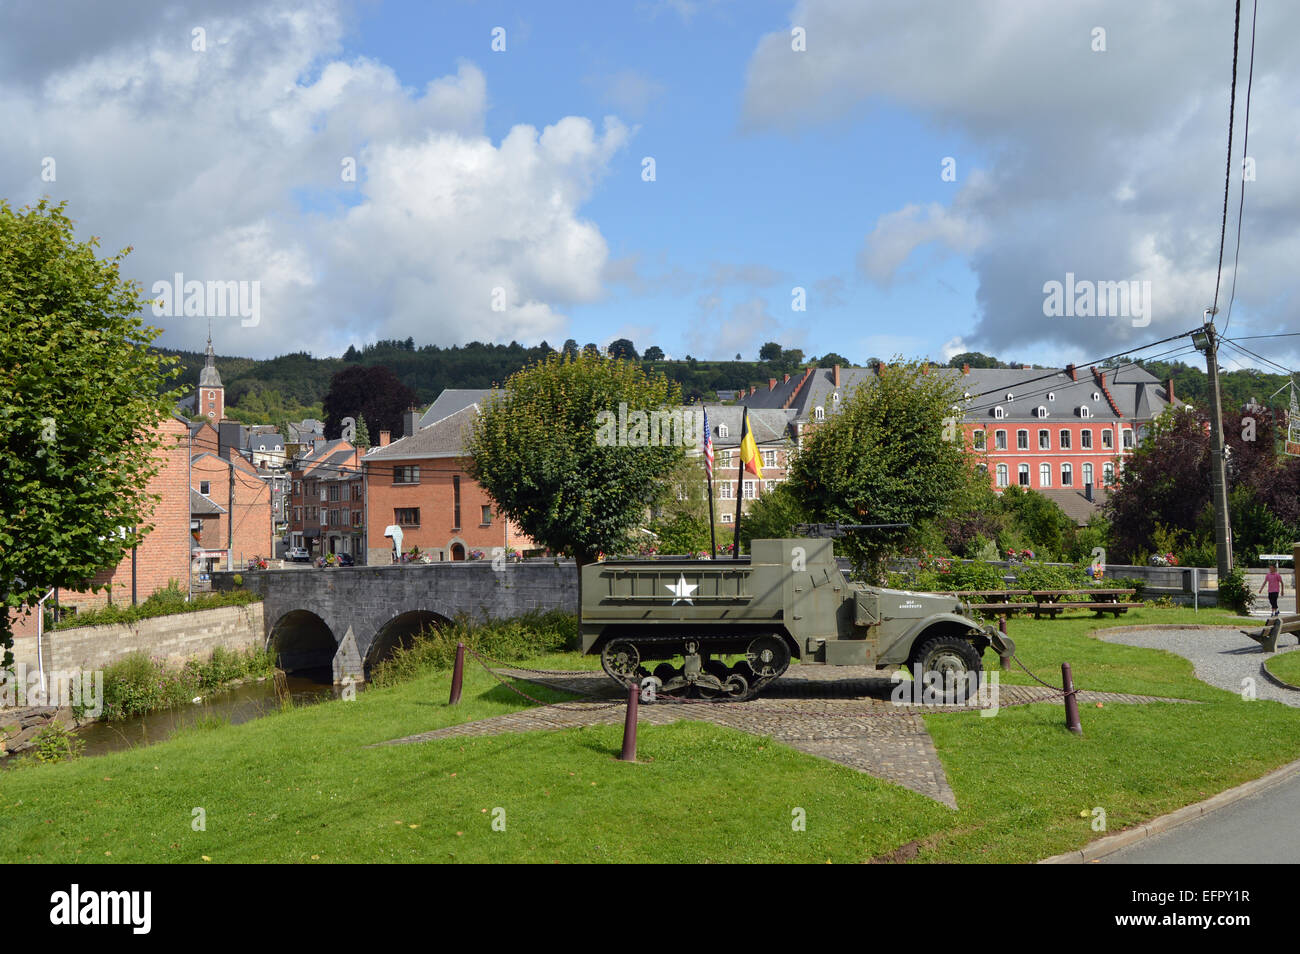 Halftrack, a WW2 Memorial of the 30th Infantry Division - near the bridge of Stavelot, Belgium - Stock Image